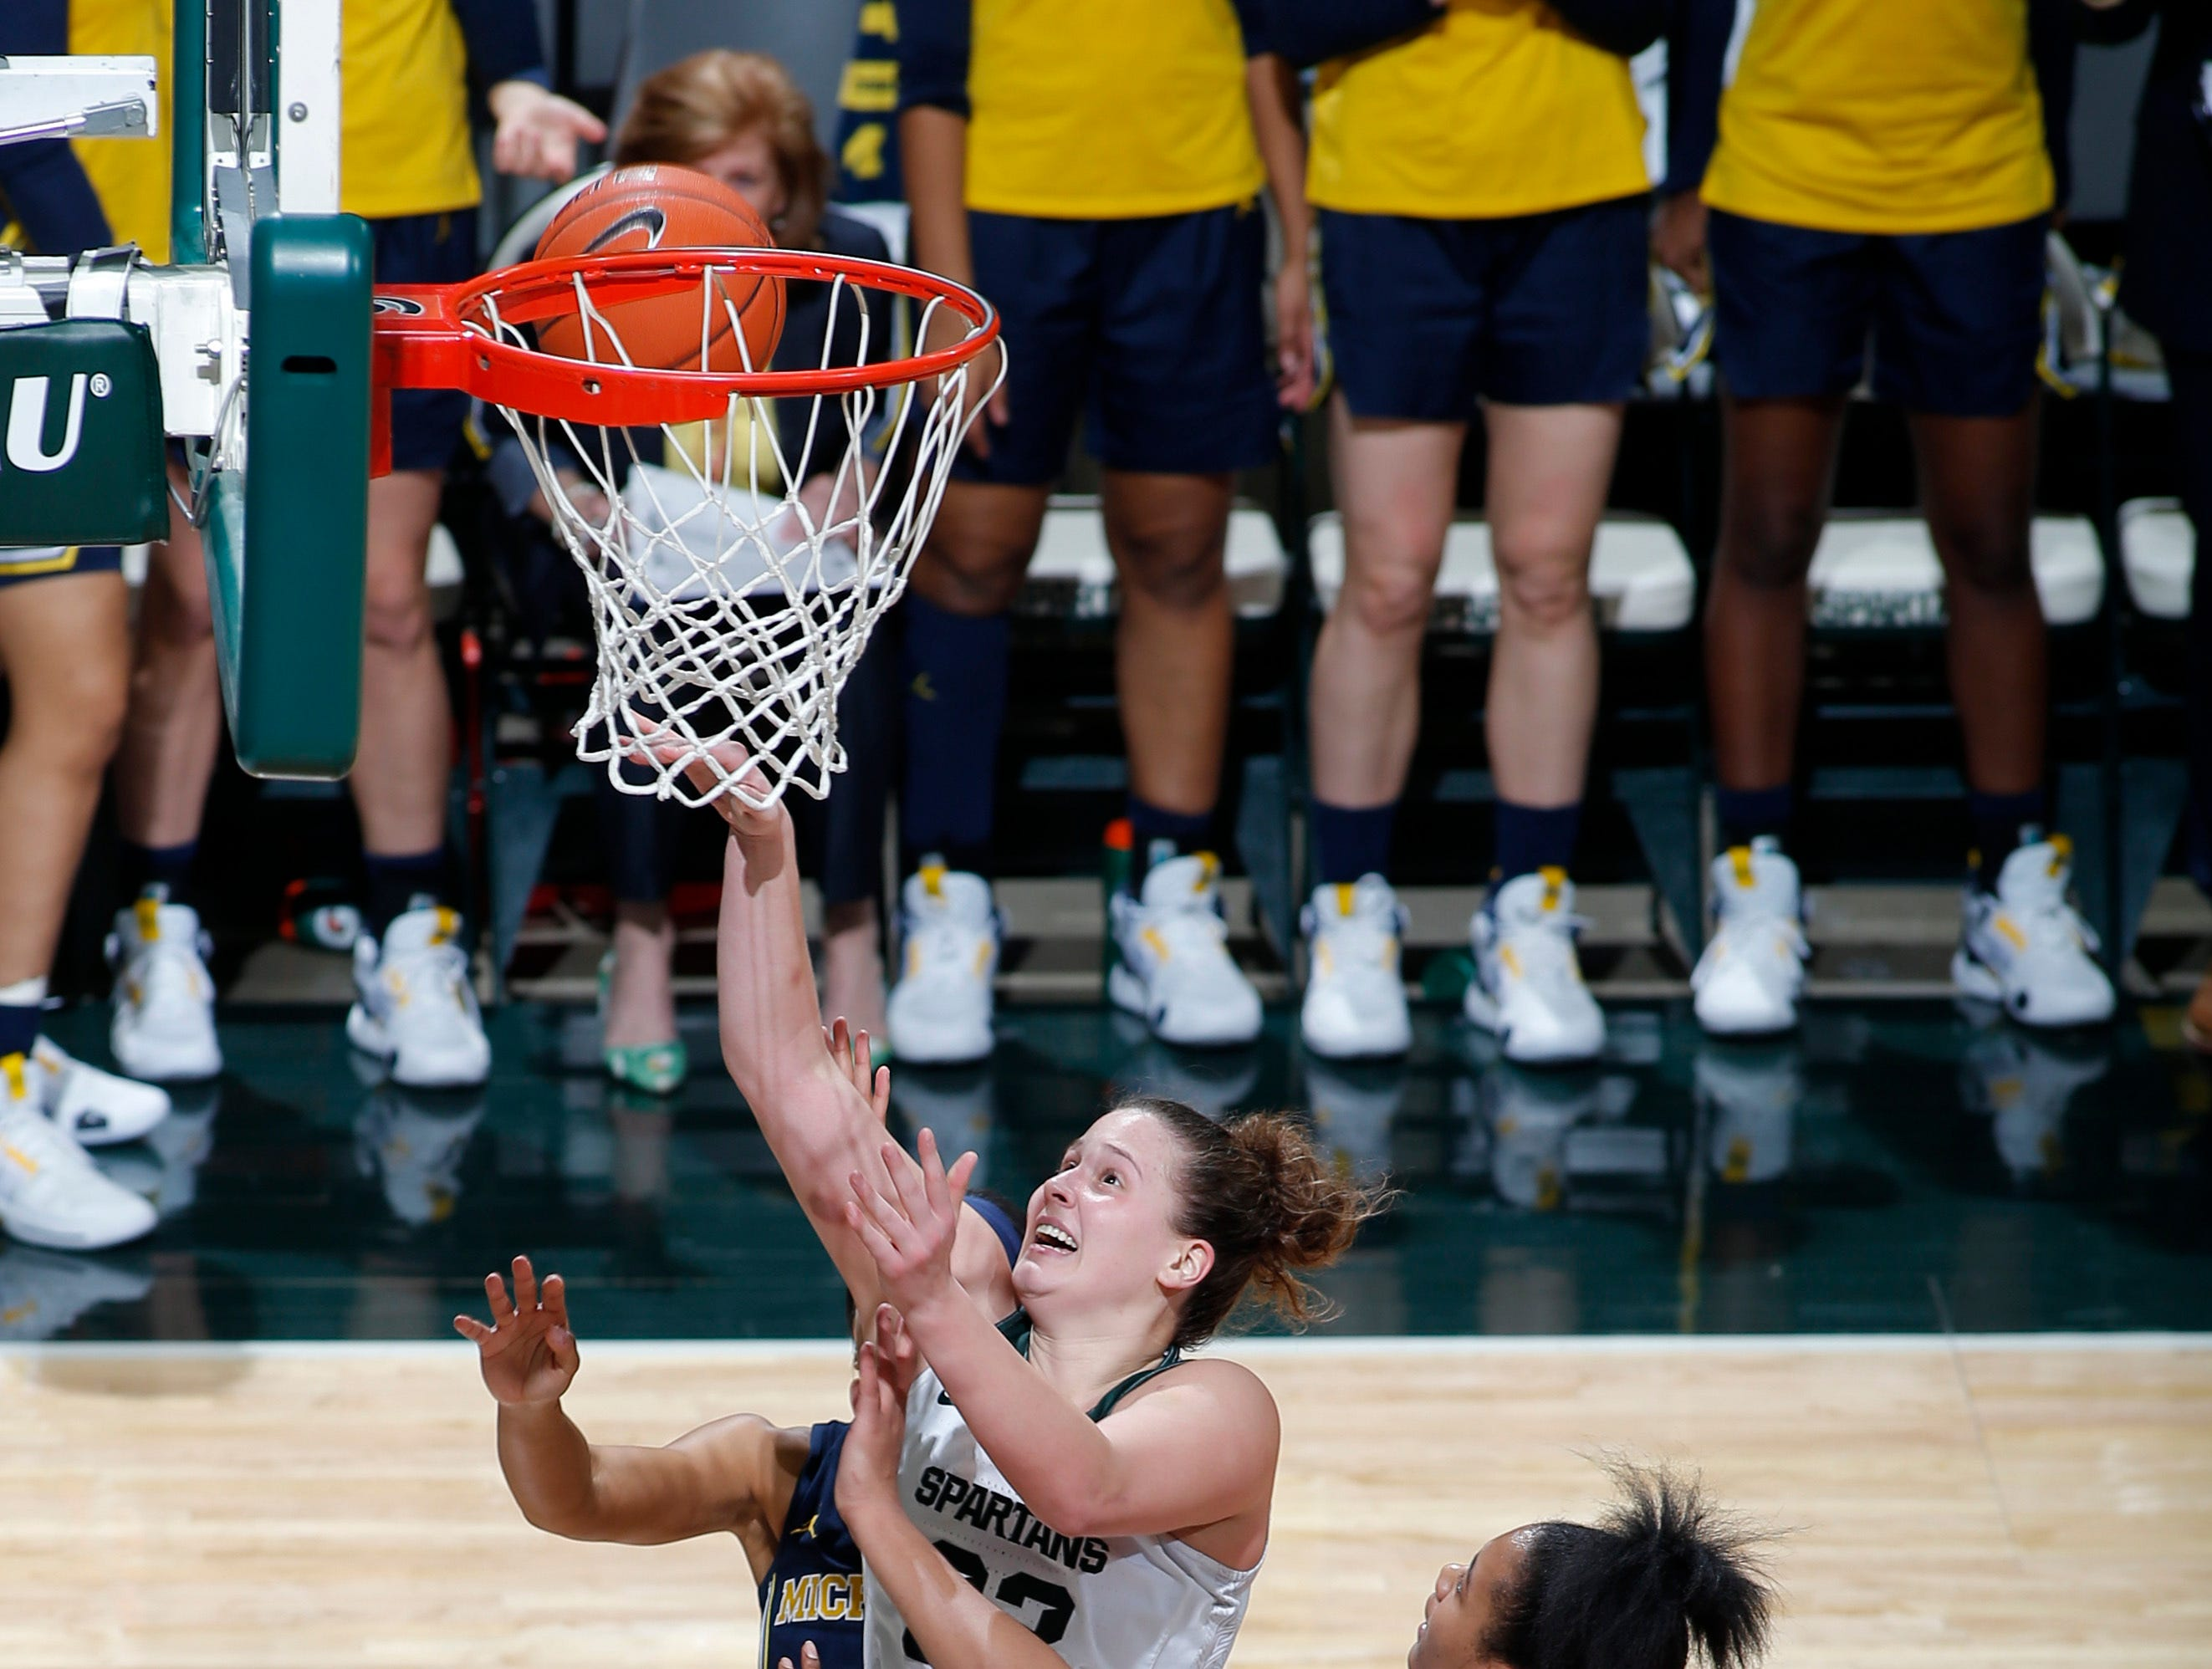 Michigan State's Jenna Allen, center, shoots against Michigan's Naz Hillmon (00) during the second quarter.